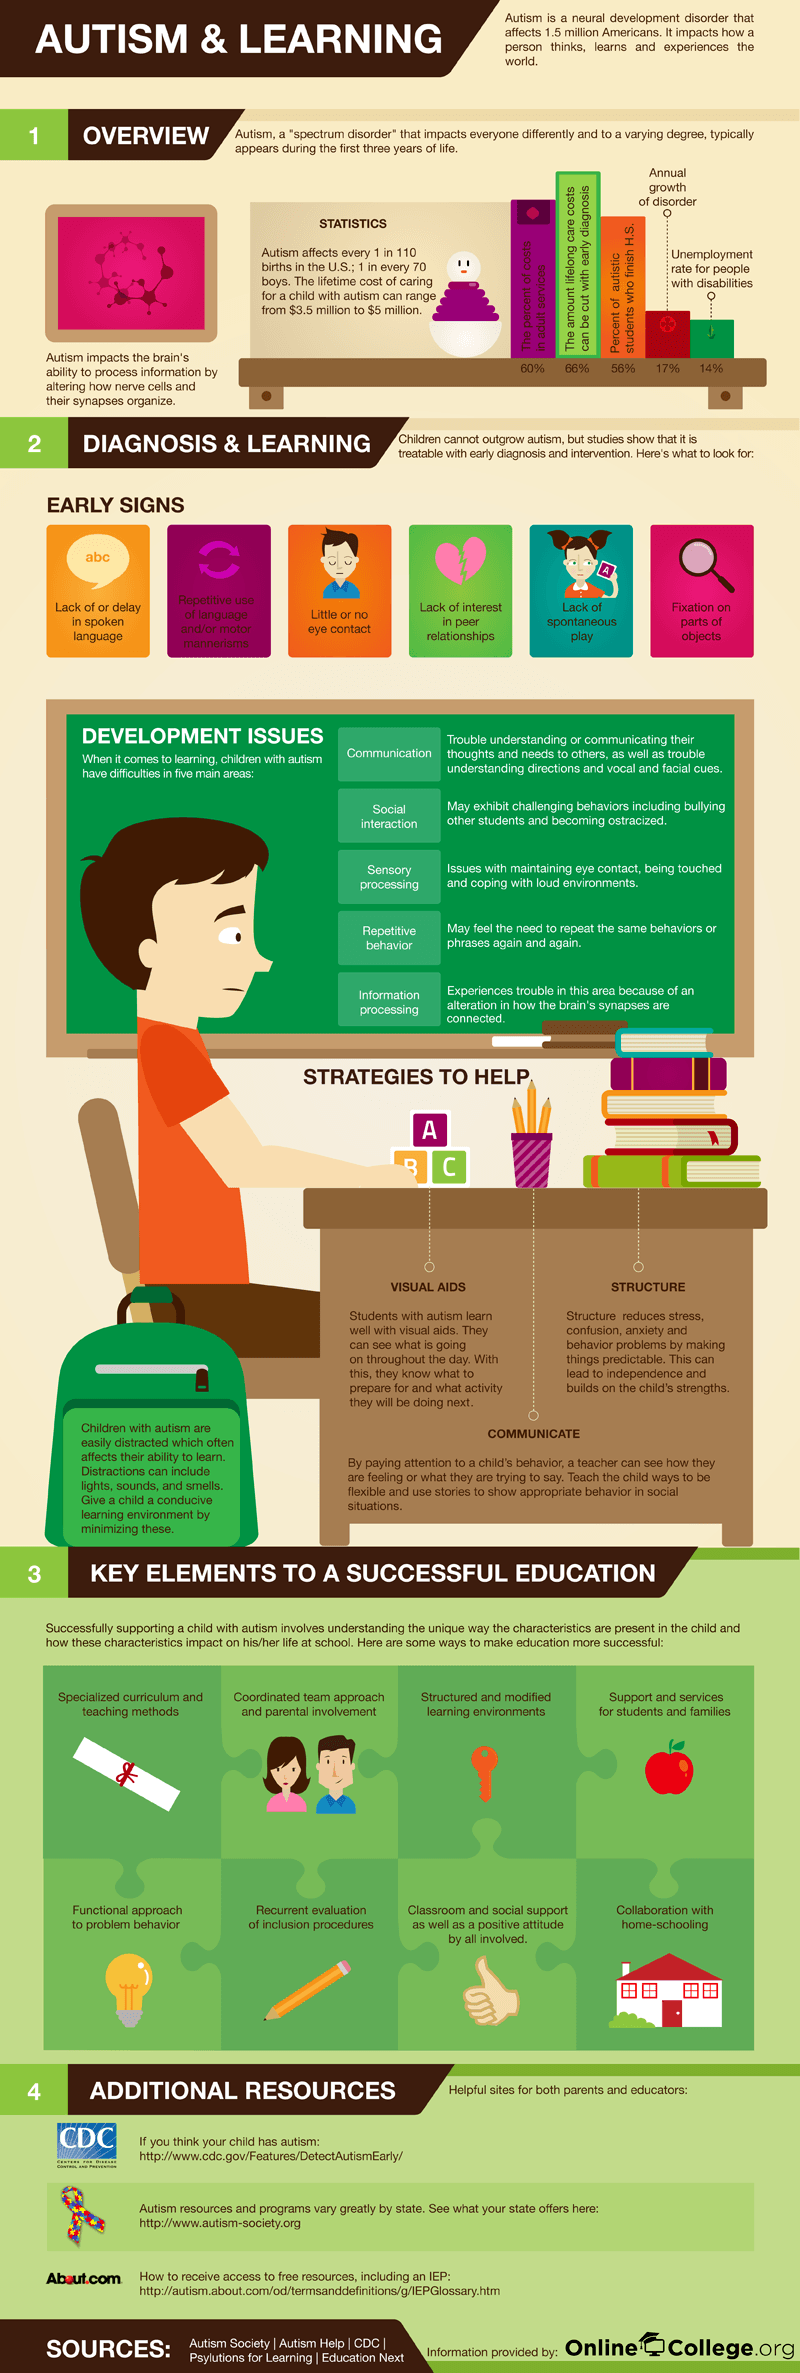 Autism-and-Learning-Infographic